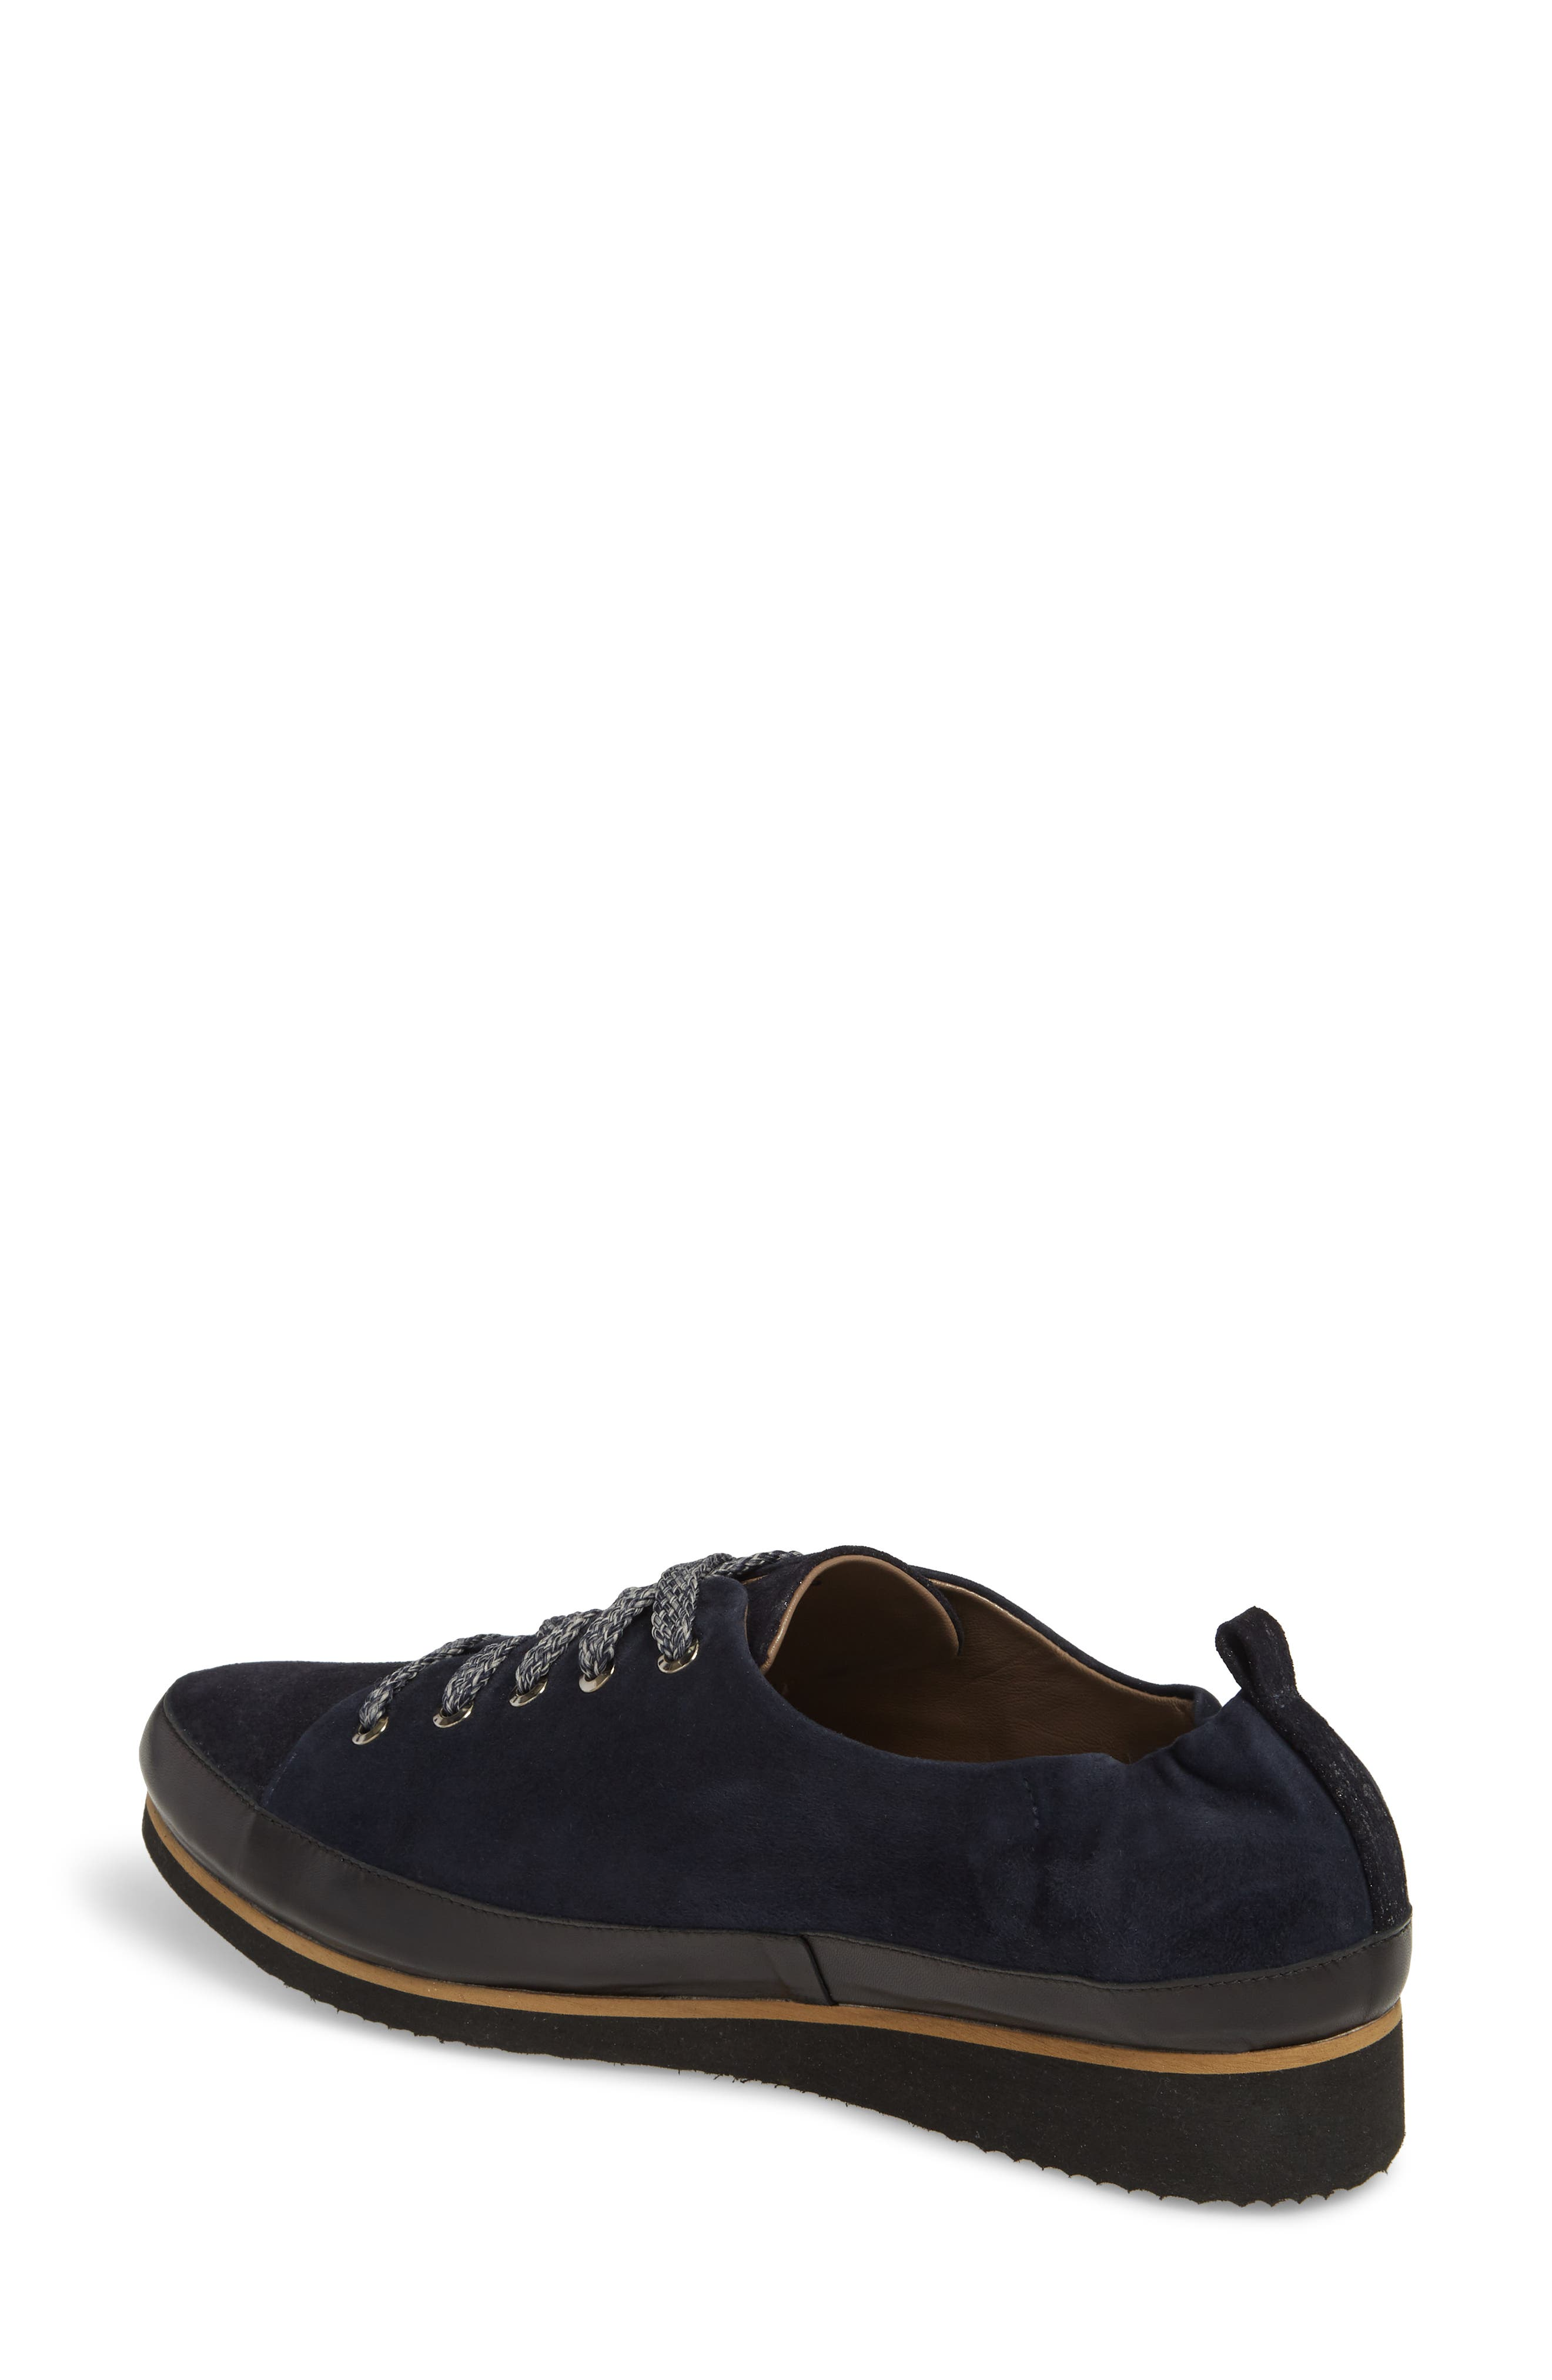 Nettie Lace-Up Wedge Sneaker,                             Alternate thumbnail 2, color,                             French Navy Leather